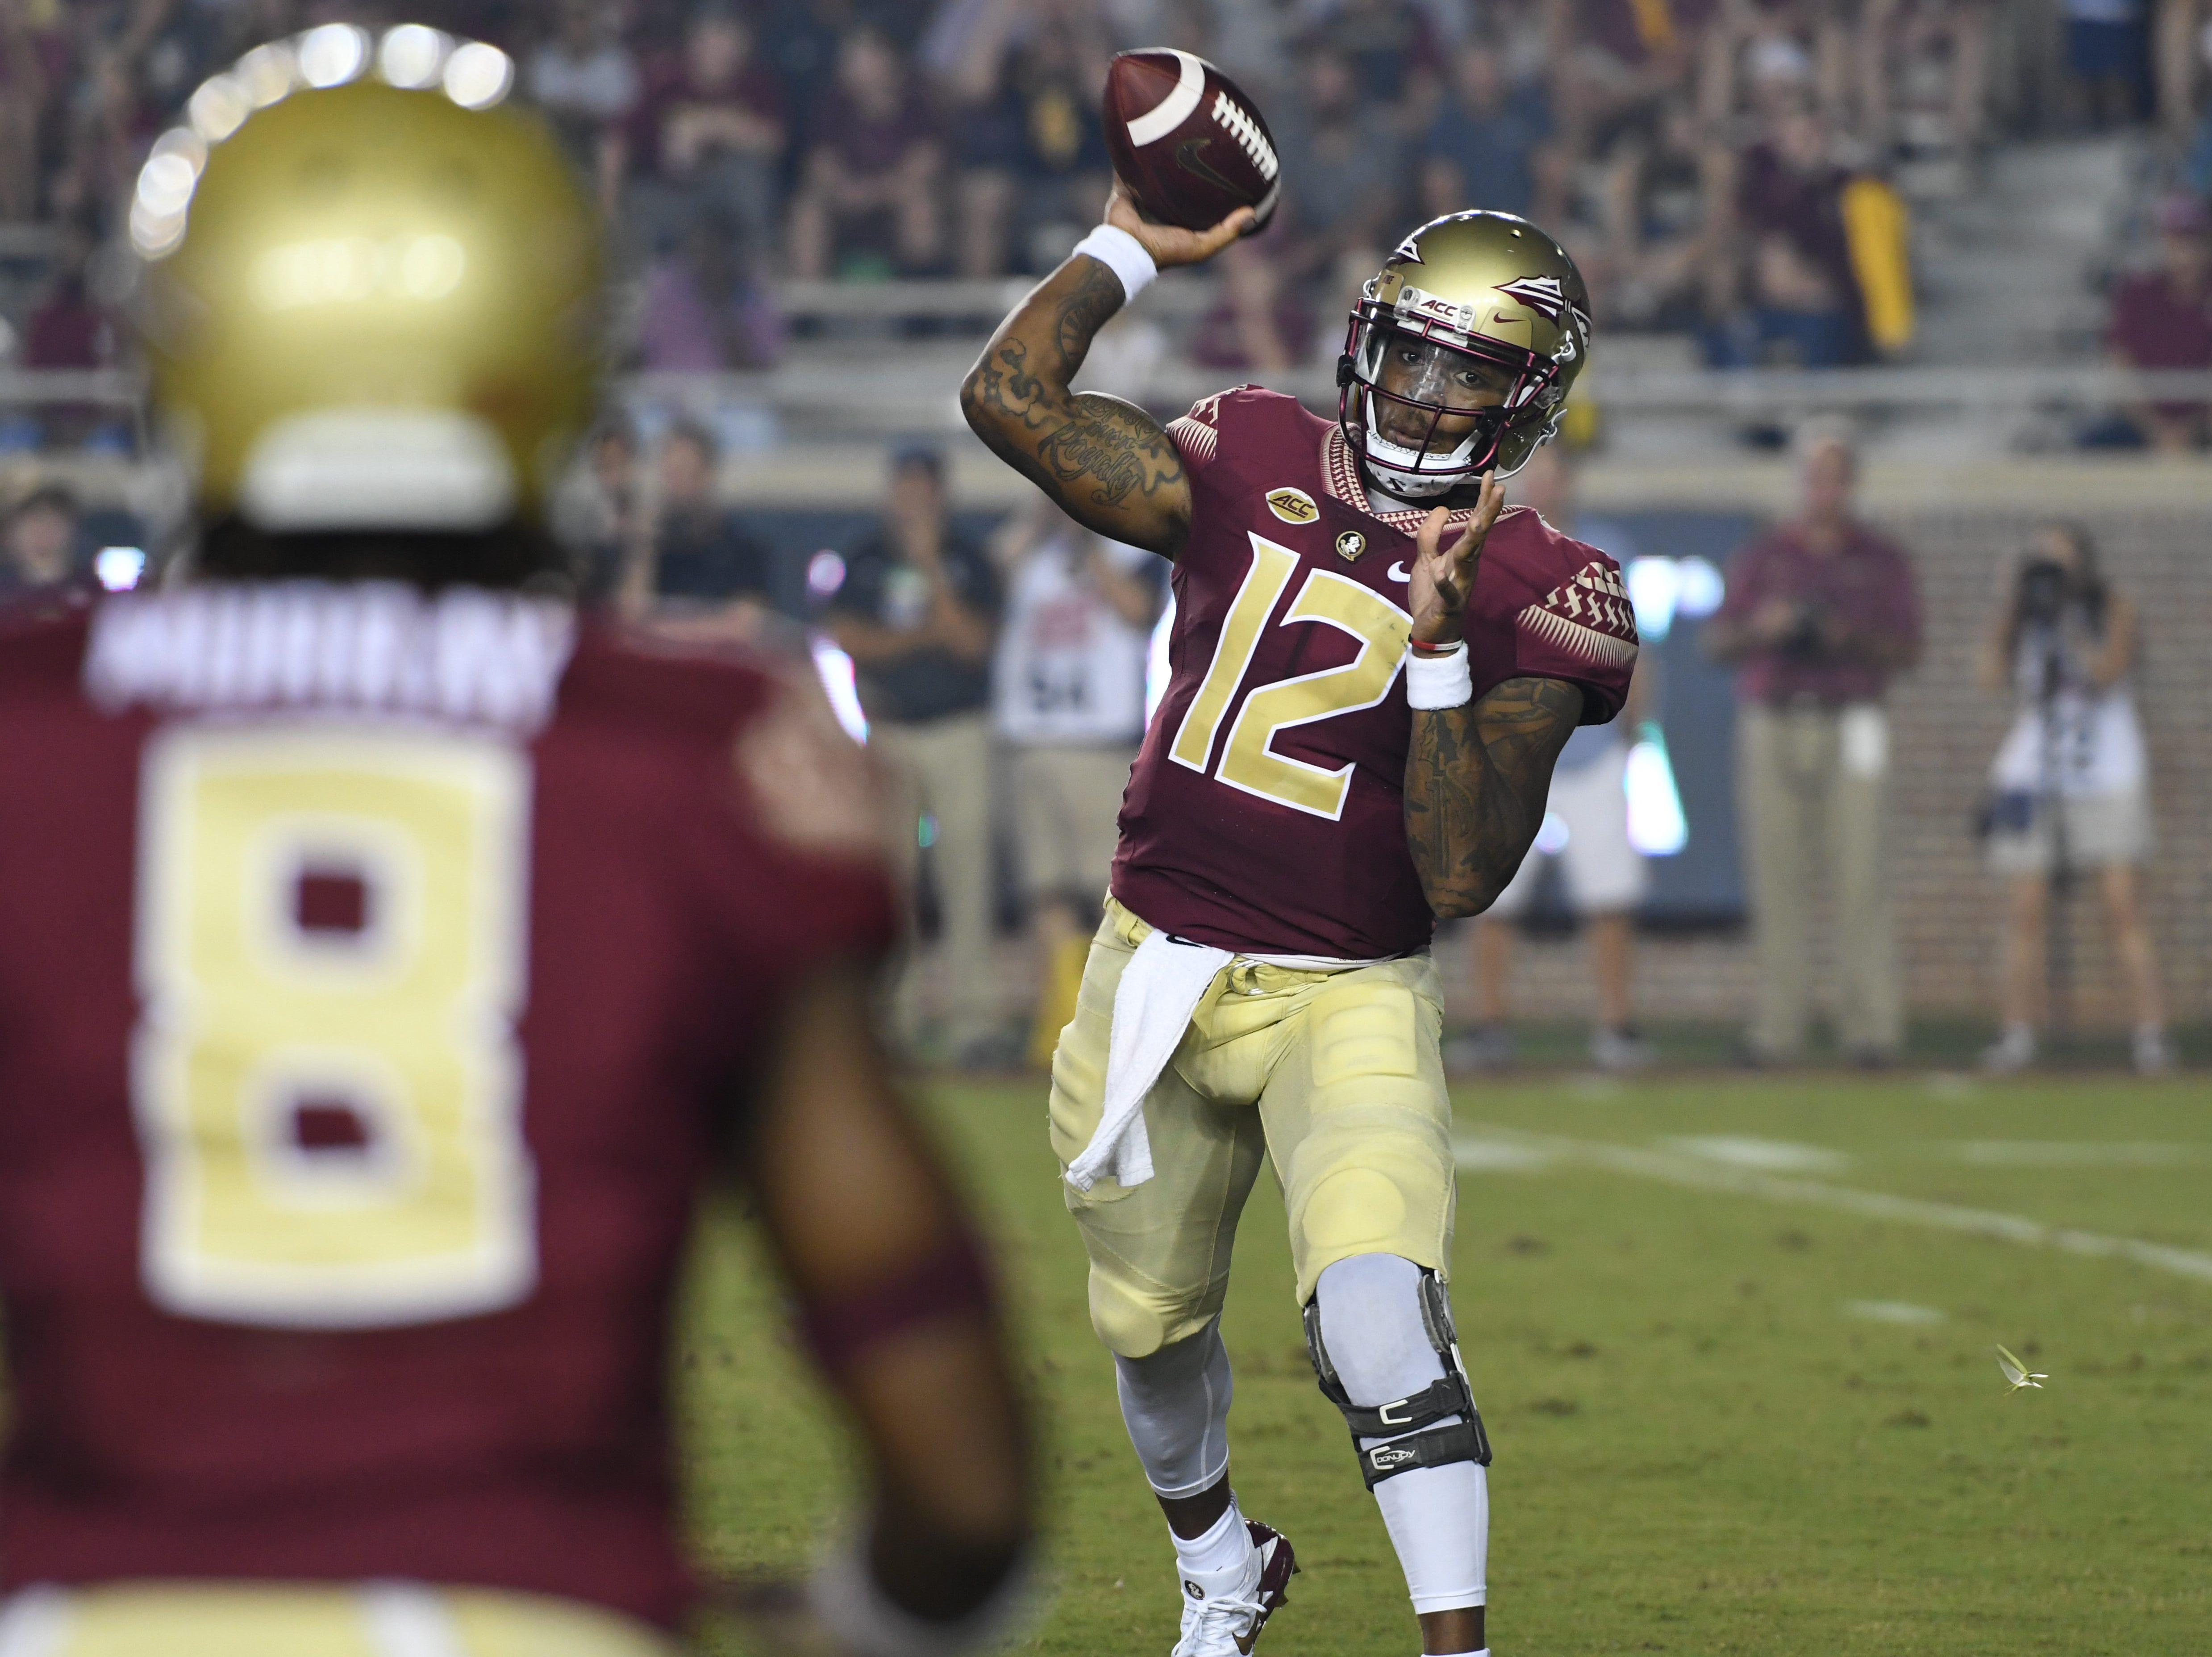 FSU redshirt junior Deondre Francois (12) throwing to Nyqwuan Murray (8) during the first quarter of FSU's matchup against Samford on Saturday night at Doak Campbell Stadium.